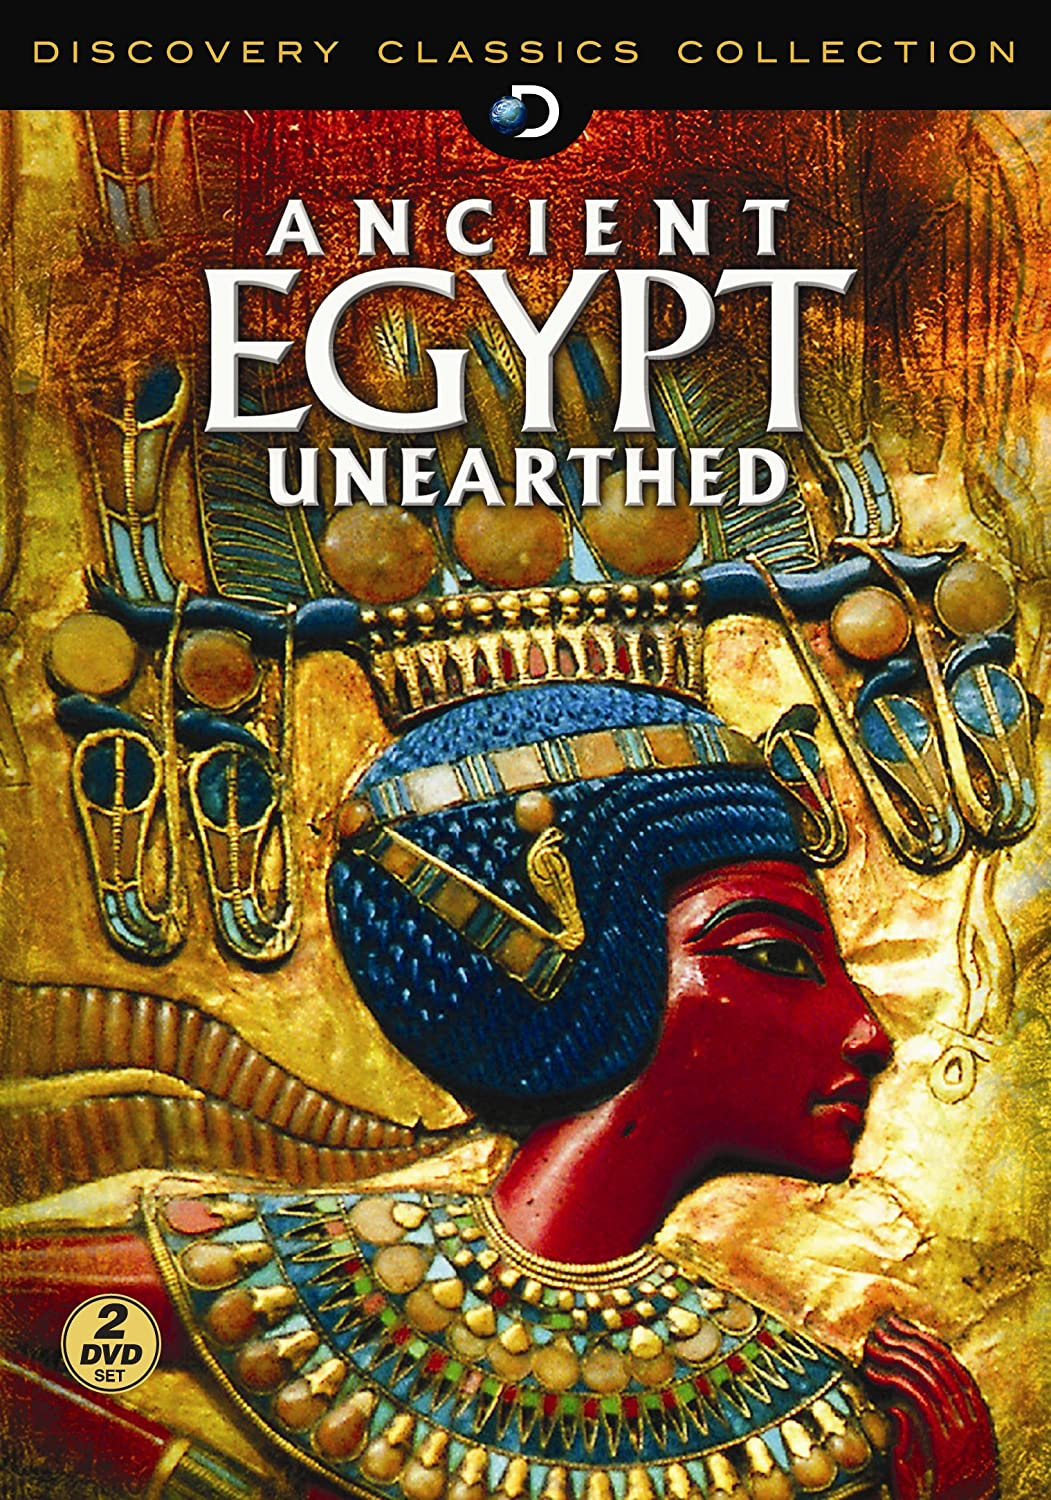 amazon com ancient egypt unearthed discovery ancient egypt